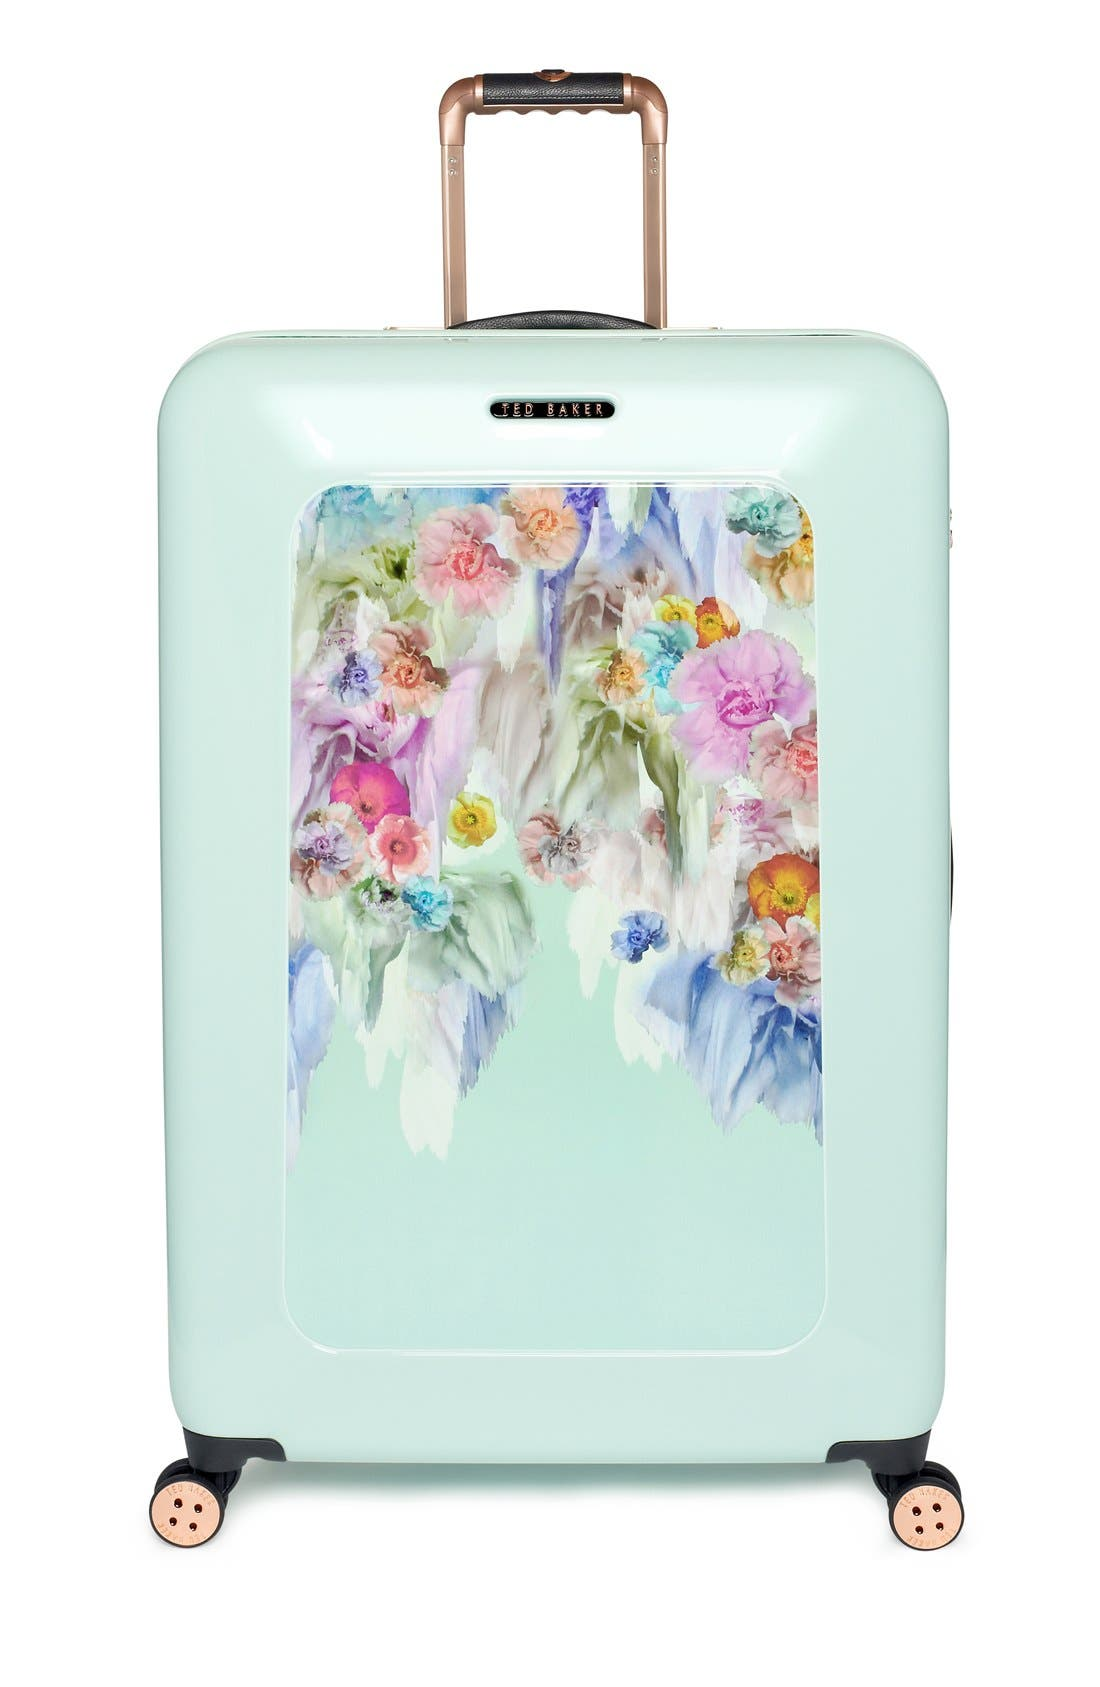 Alternate Image 1 Selected - Ted Baker London 'Large Sugar Sweet Florals' Hard Shell Suitcase (32 Inch)